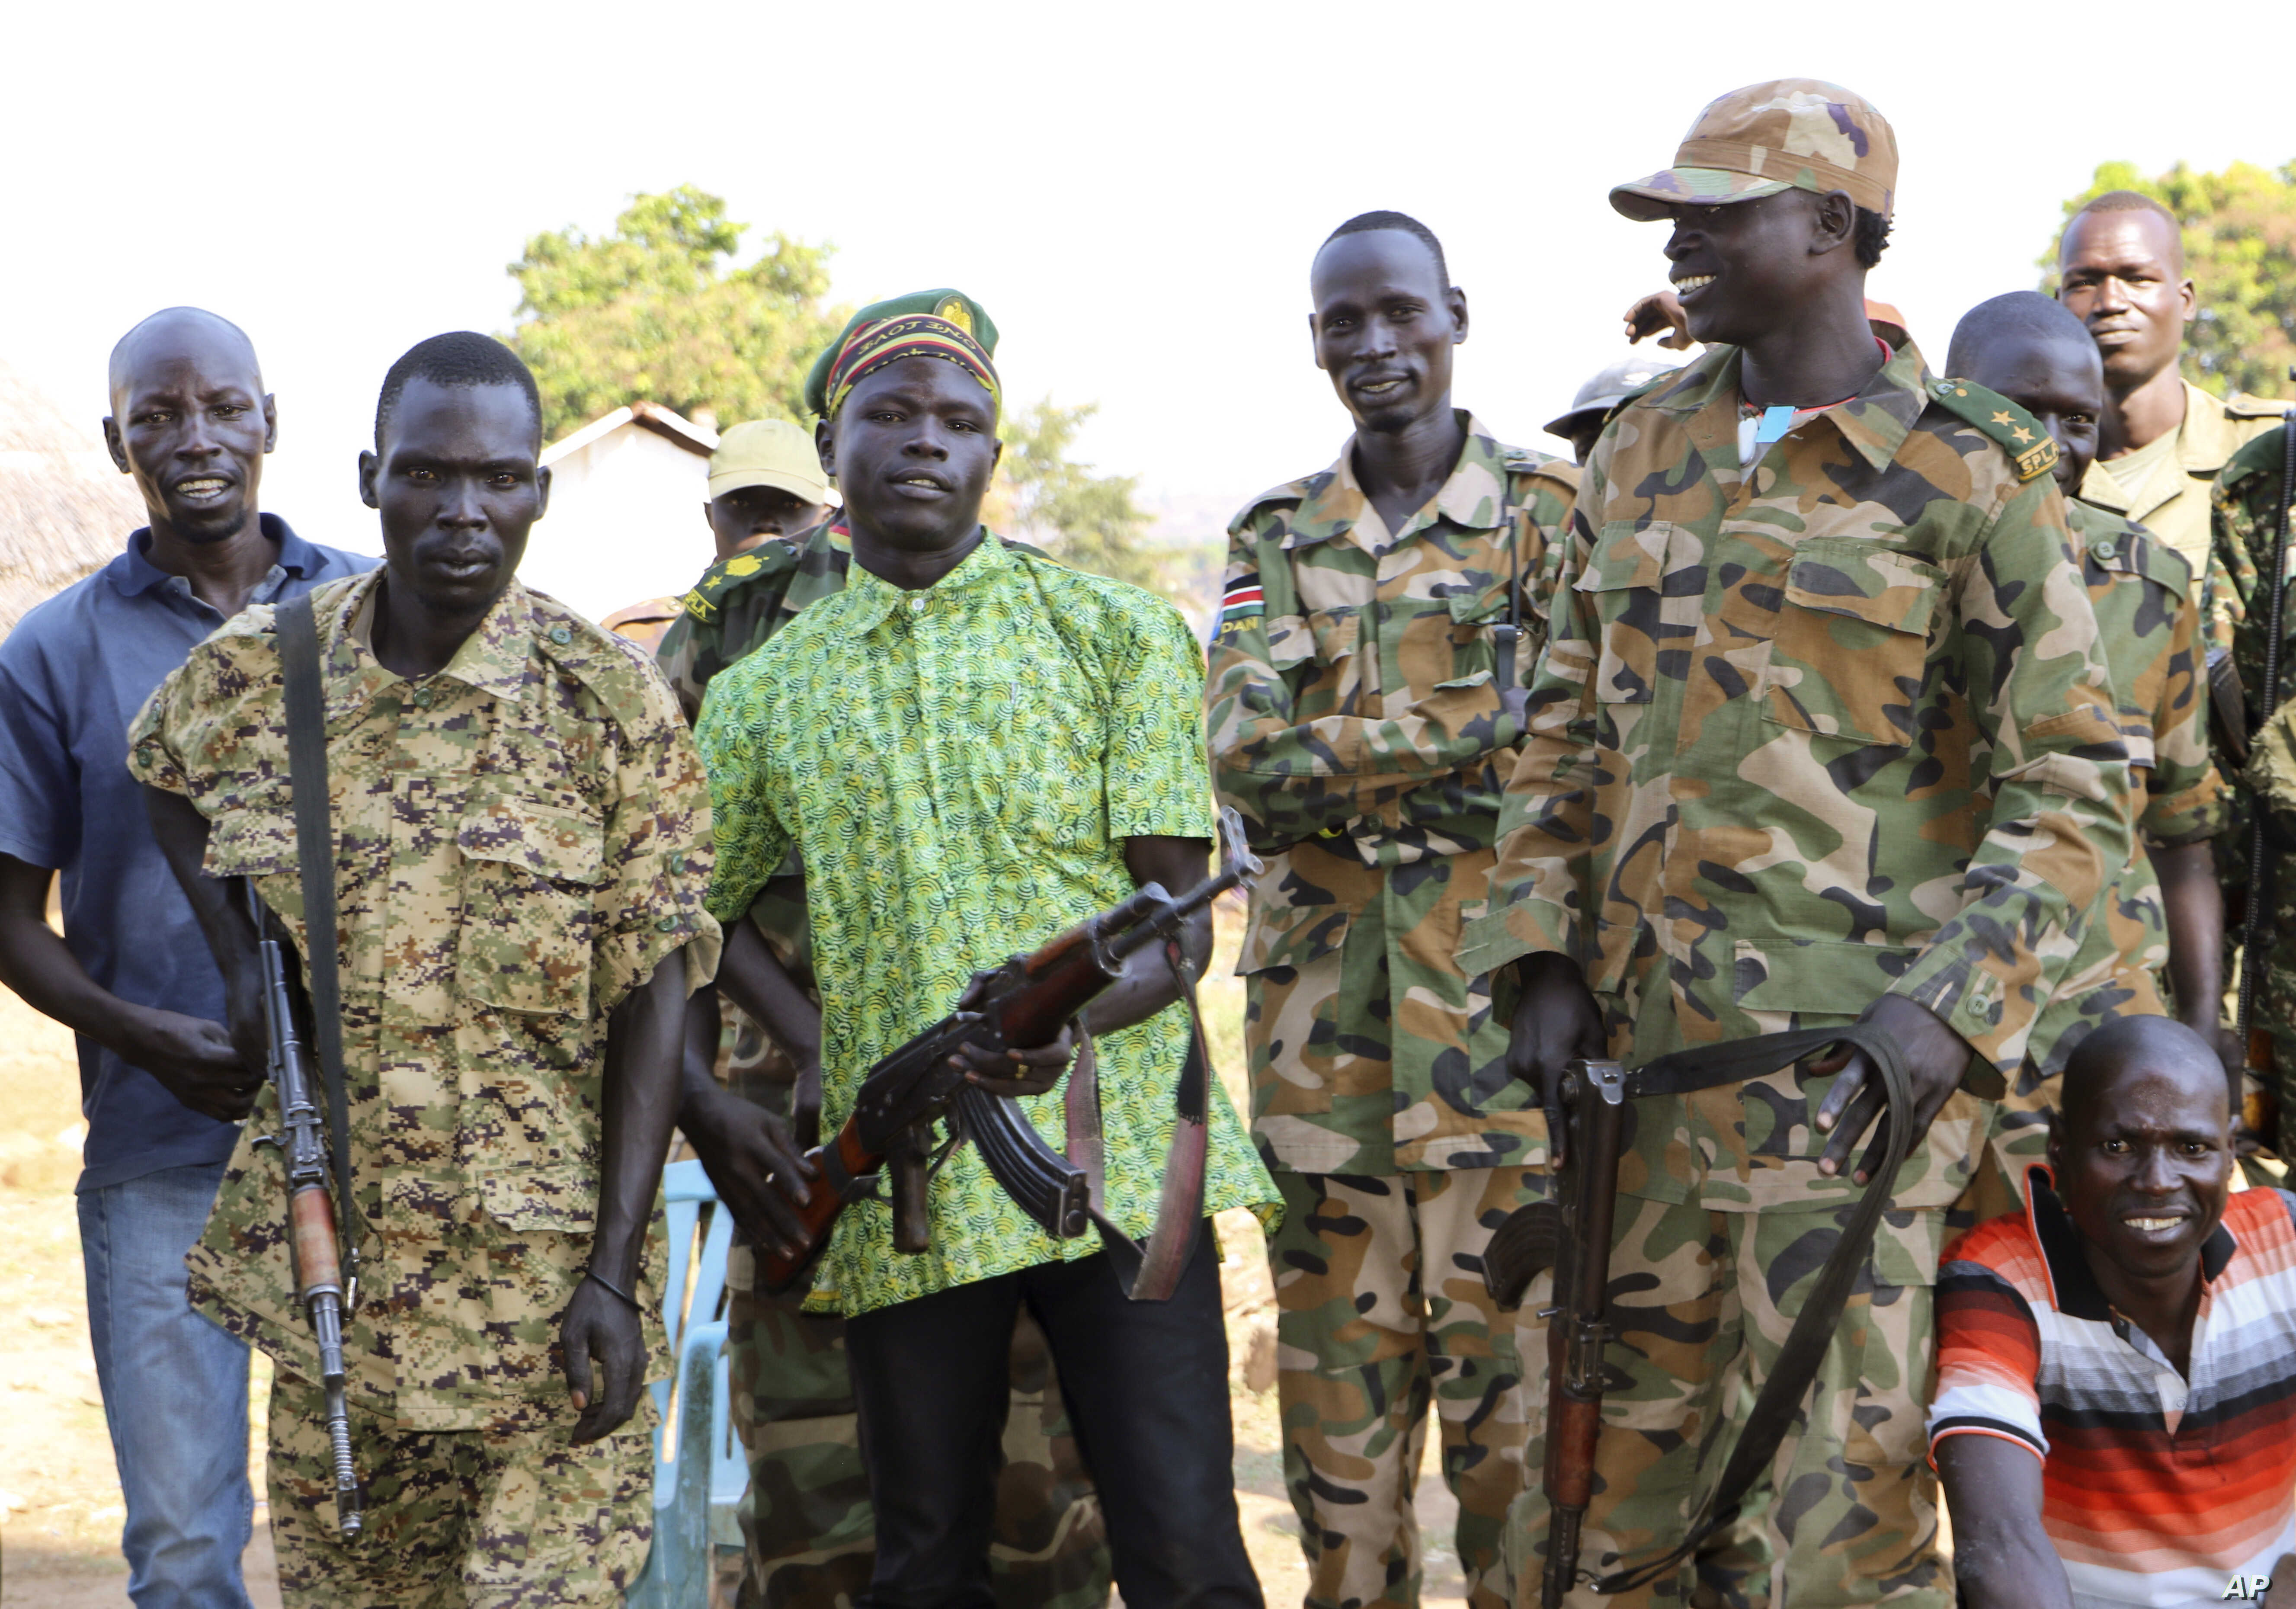 FILE - In this photo taken Jan. 6, 2019, government and opposition soldiers pose for a picture in the government barracks in Kajo Keji town, where 10 opposition soldiers were staying with the government troops in a makeshift soldier swap, in Kajo Kej...